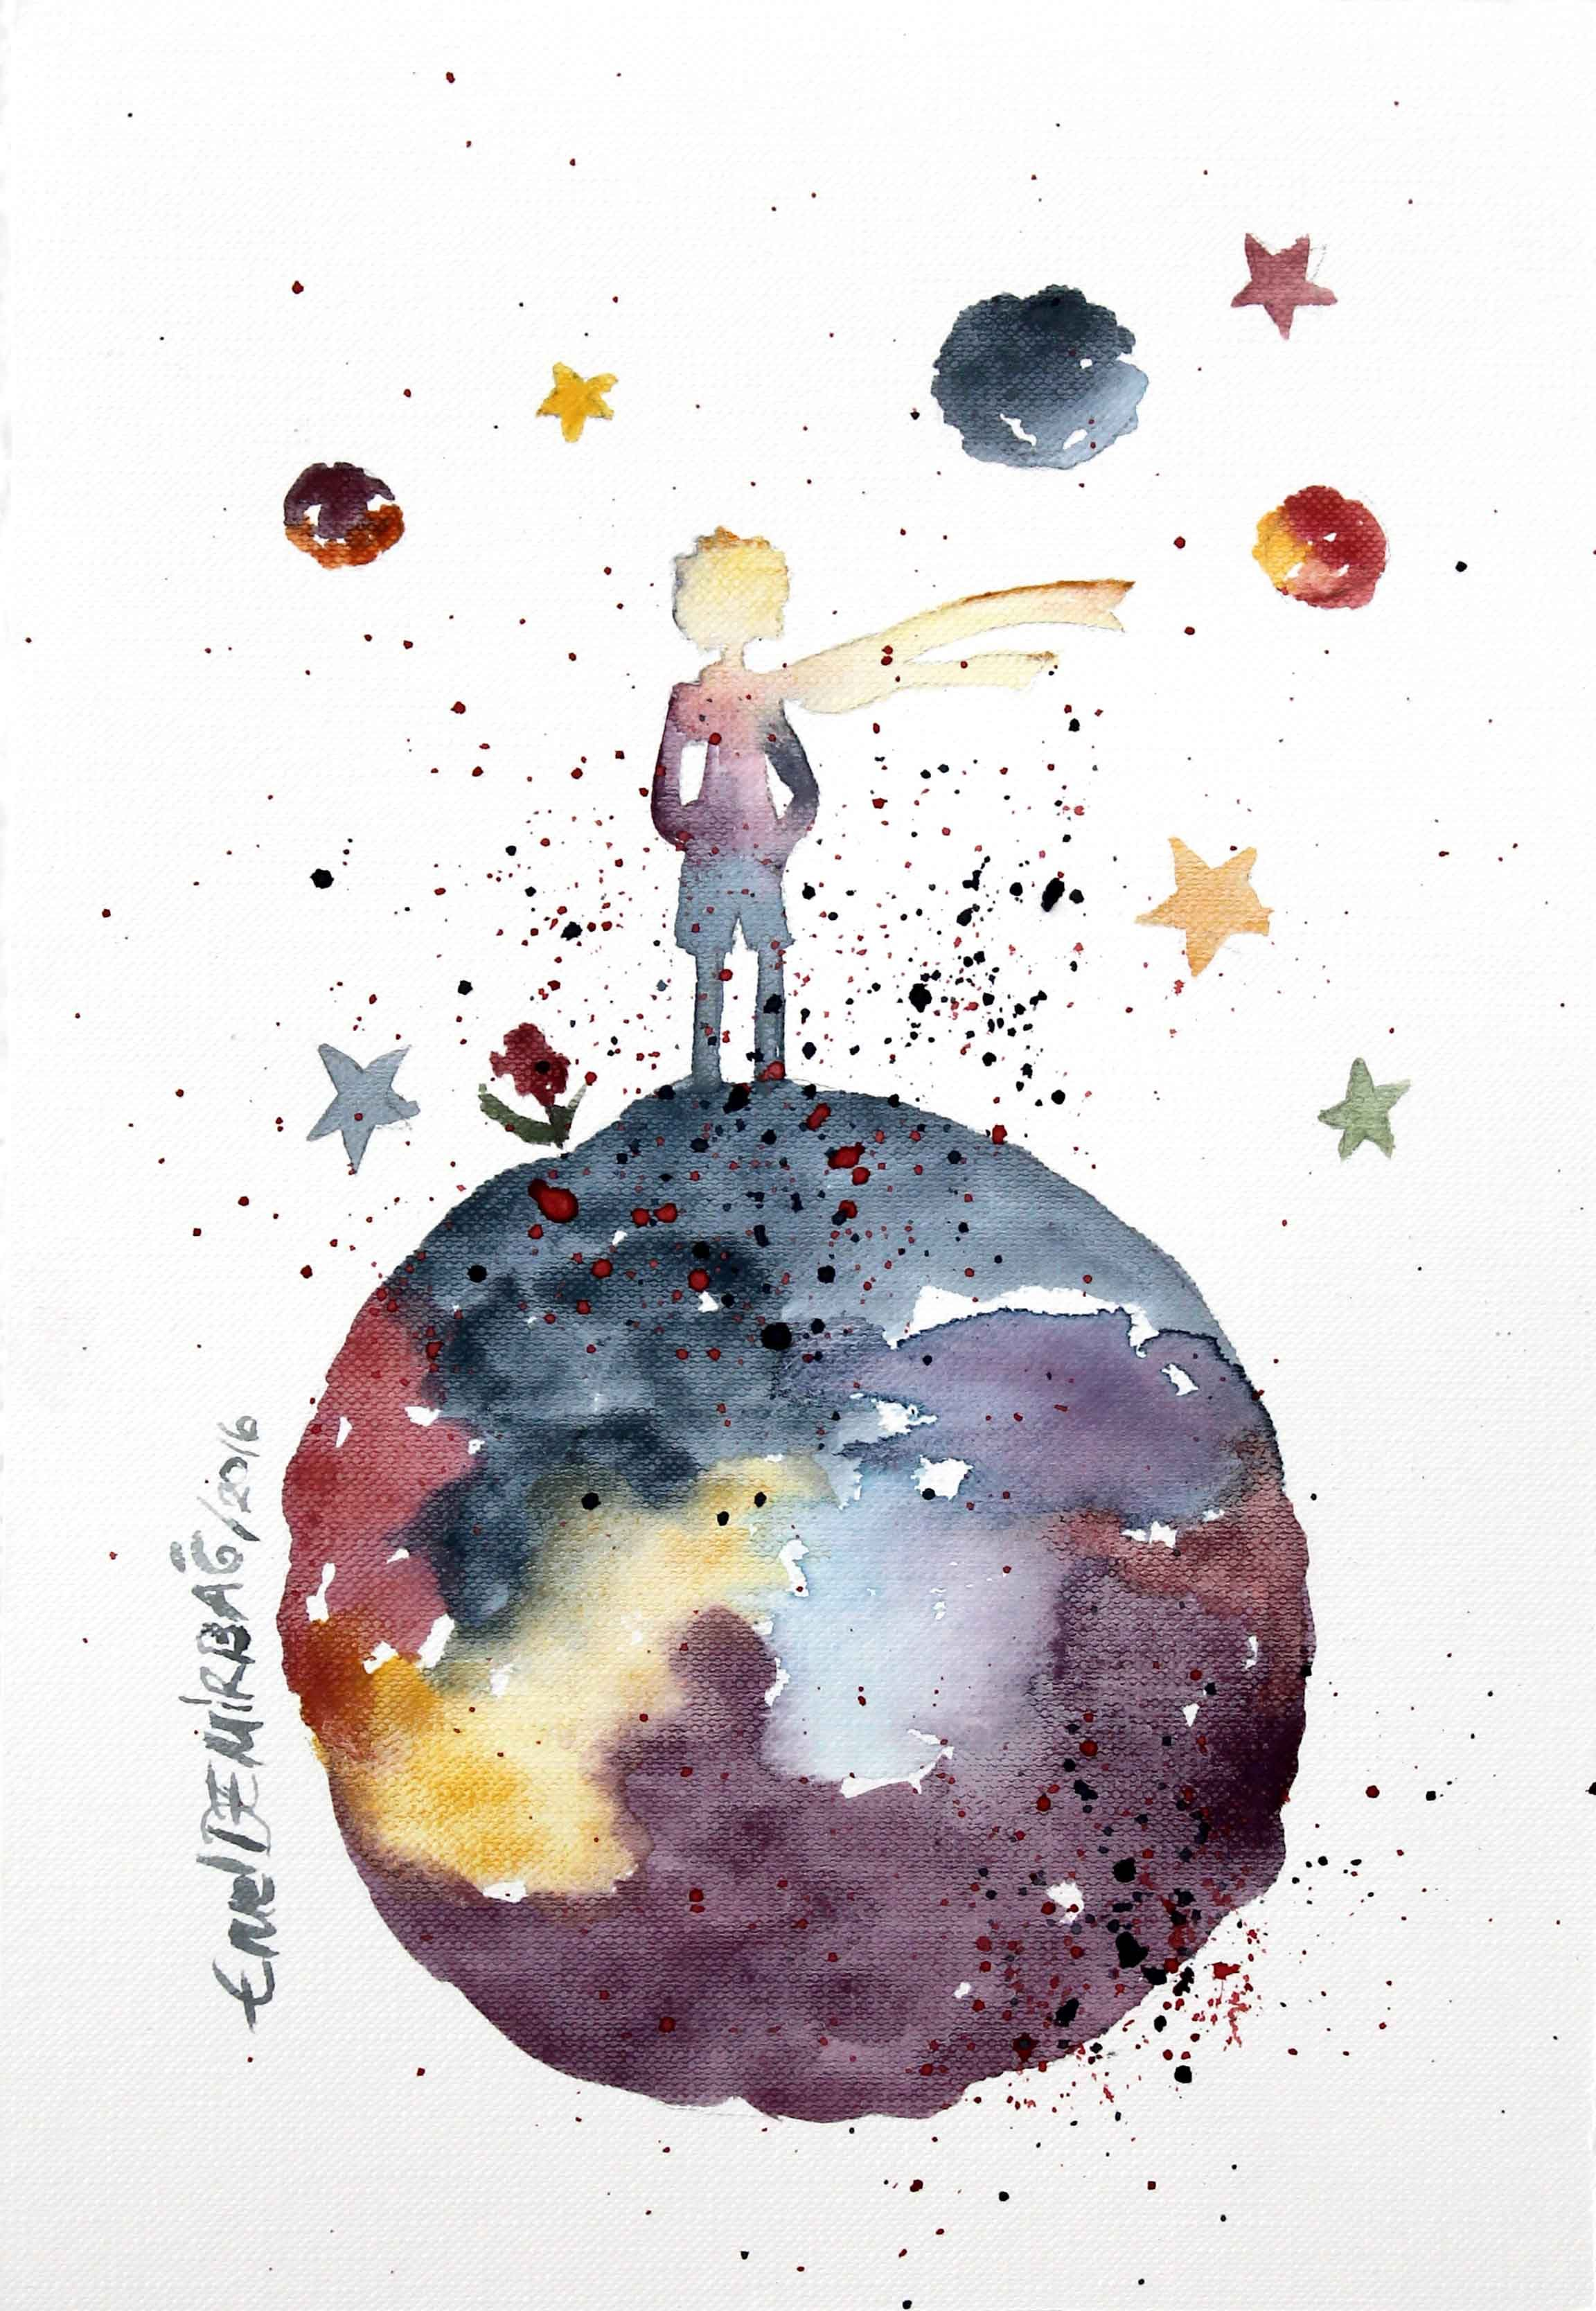 Girl Nursery Decor, The Little Prince Painting, Original Watercolor, Baby Shower Gift, New Baby Room Decor, Nursery Wall Art, New Baby Gift